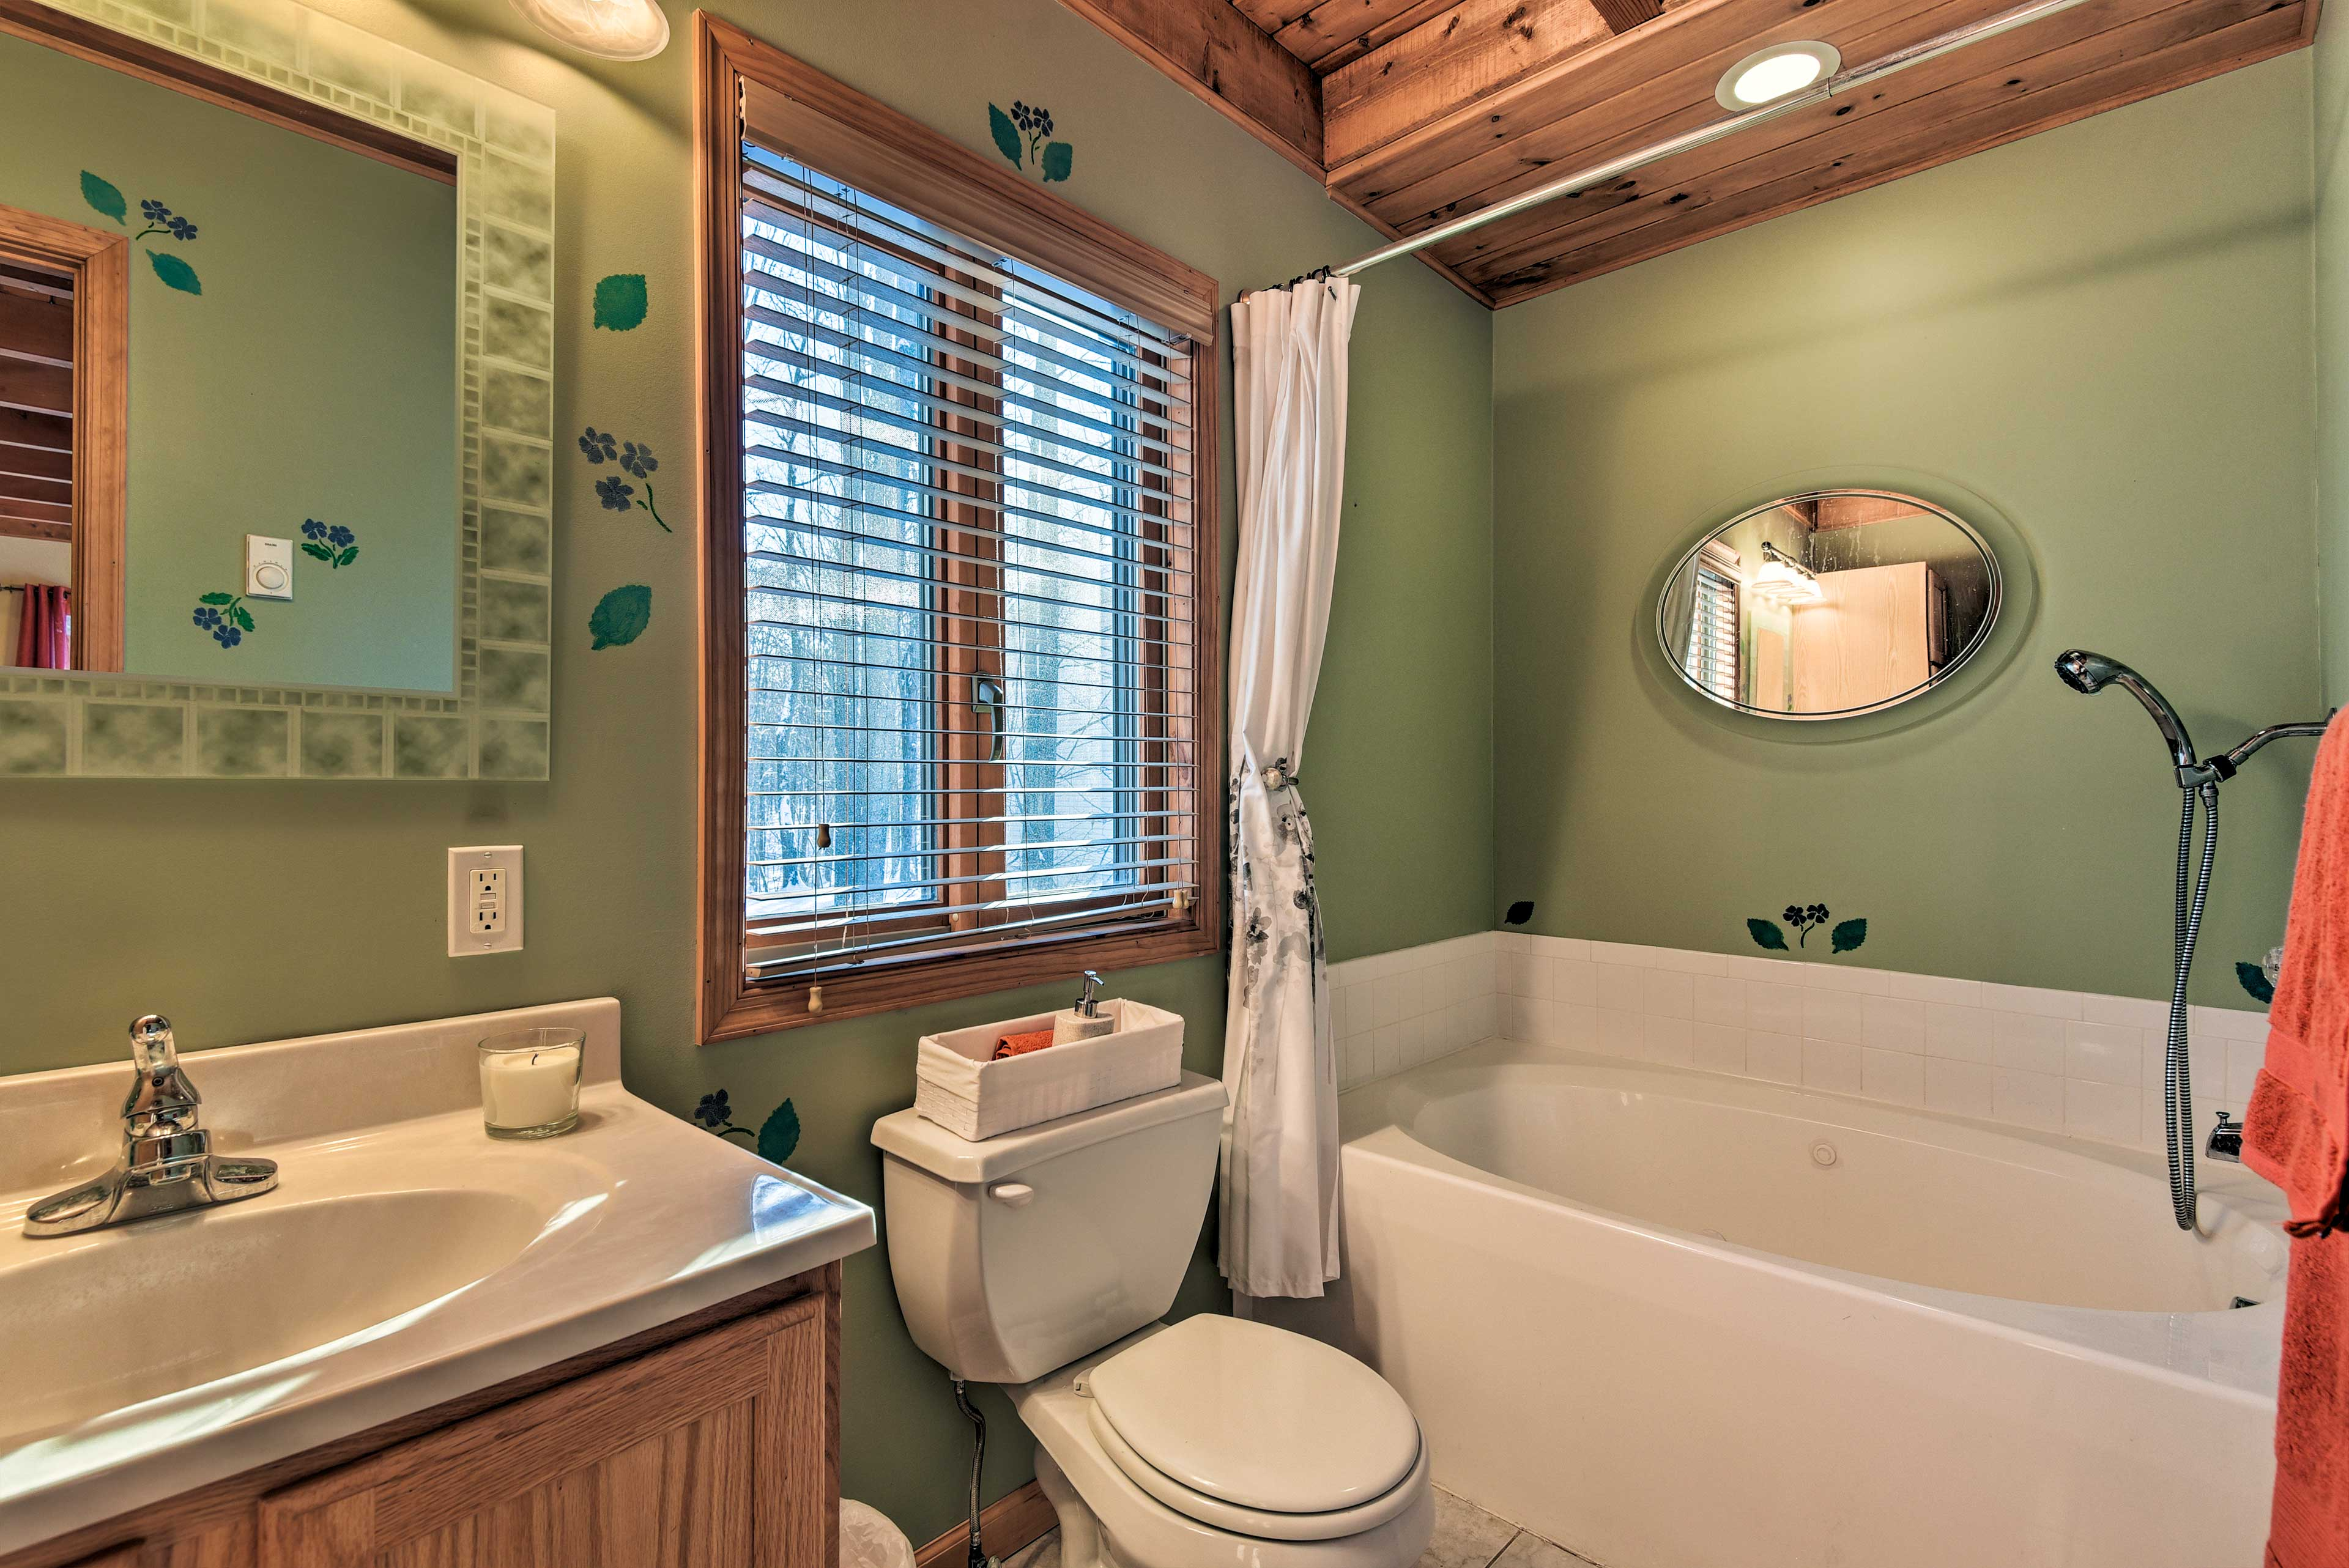 Feel your soreness melt away with a soak in this tub.